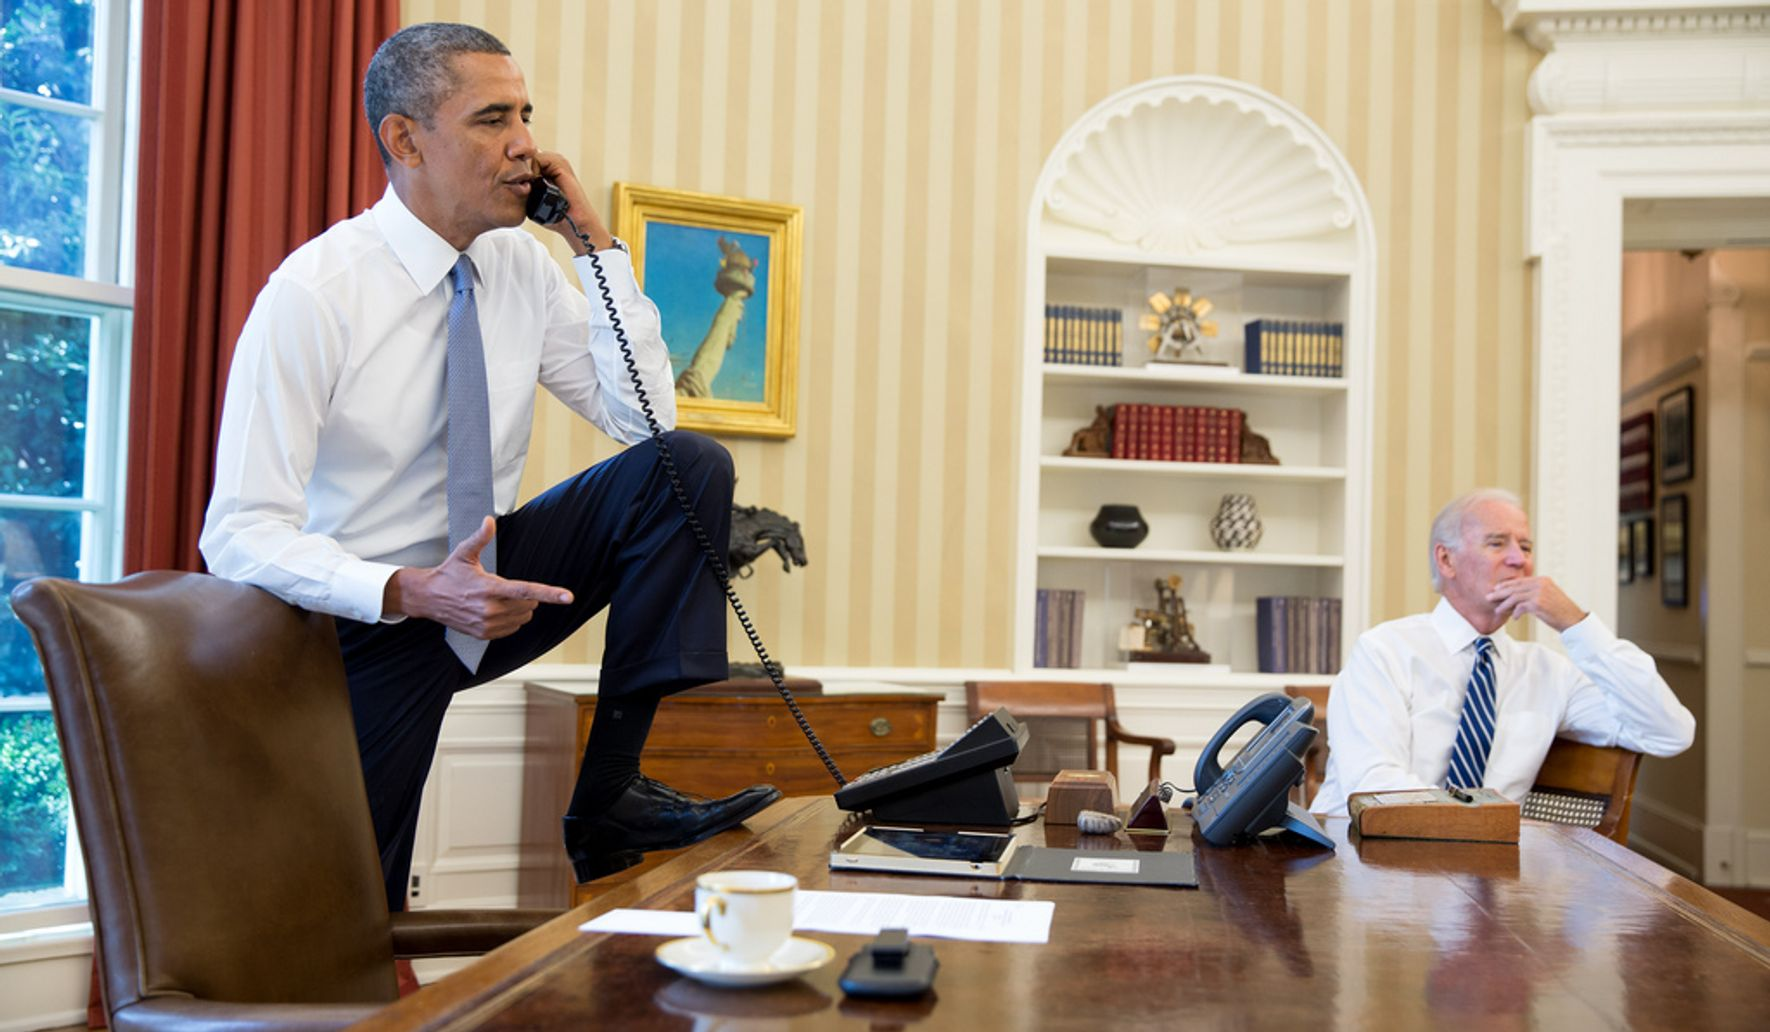 Obama Oval Office Address Not So Much >> Obama S Foot On Oval Office Desk Sends Shockwaves Around The World